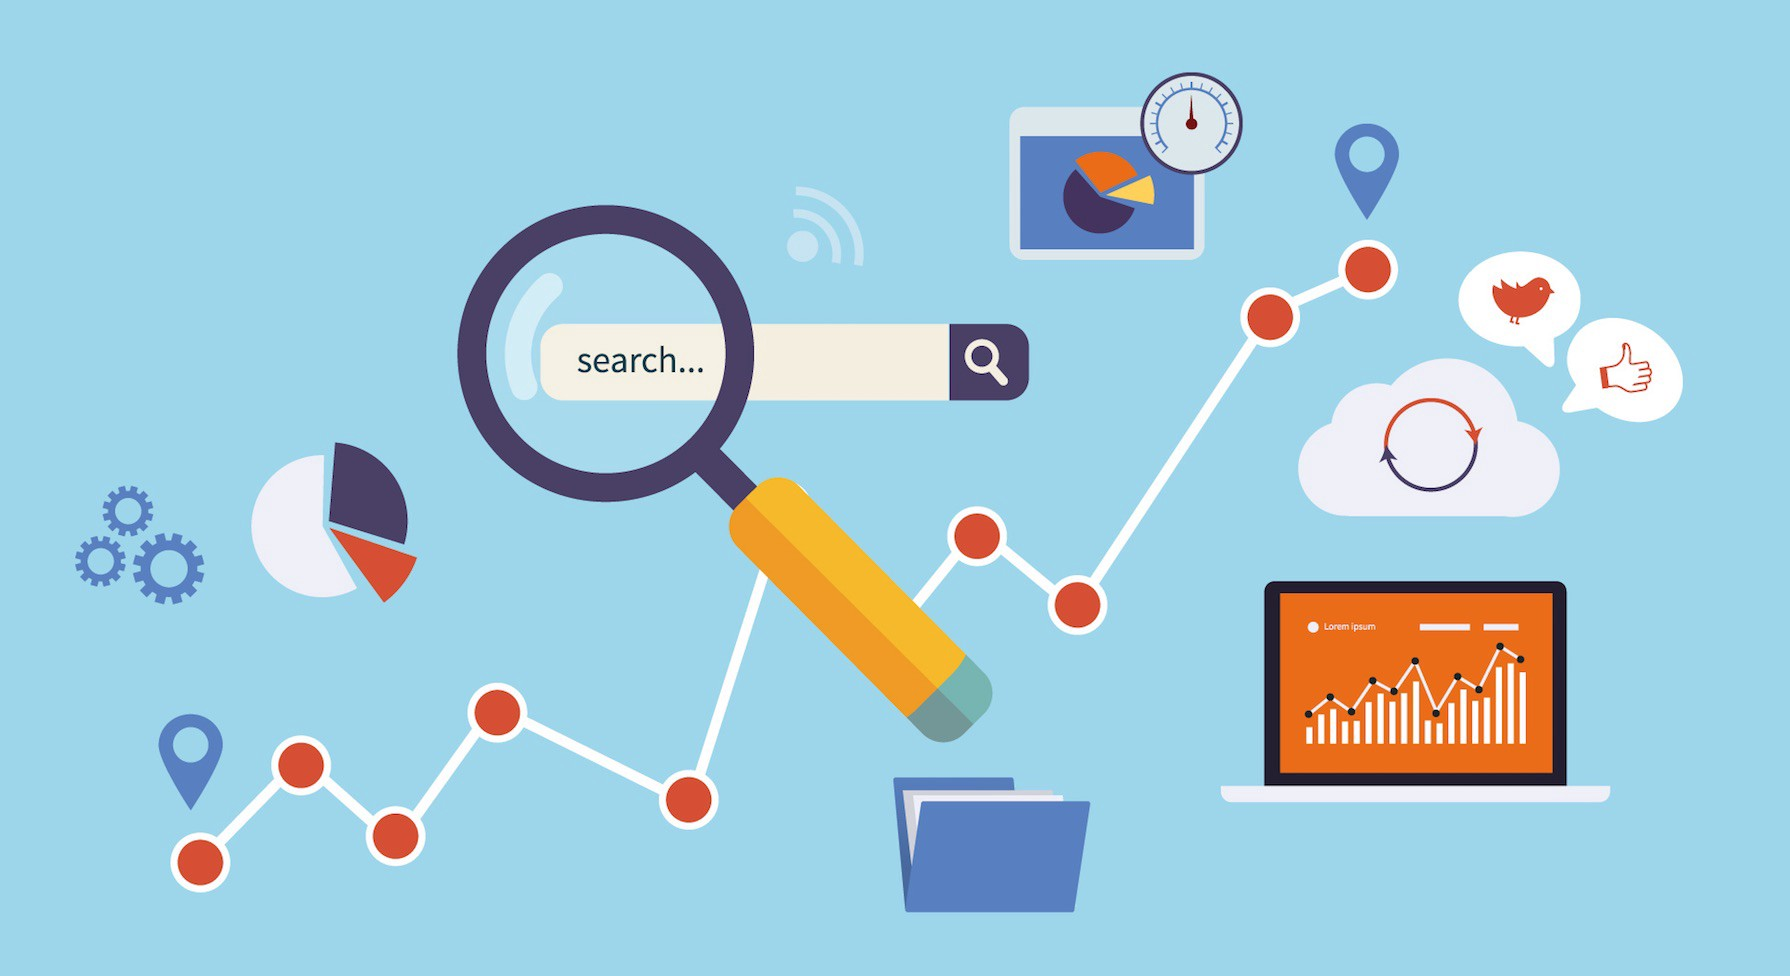 TOP 5 EFFECTIVE USE OF DIGITAL MARKETING TO GAIN WEBSITE TRAFFIC